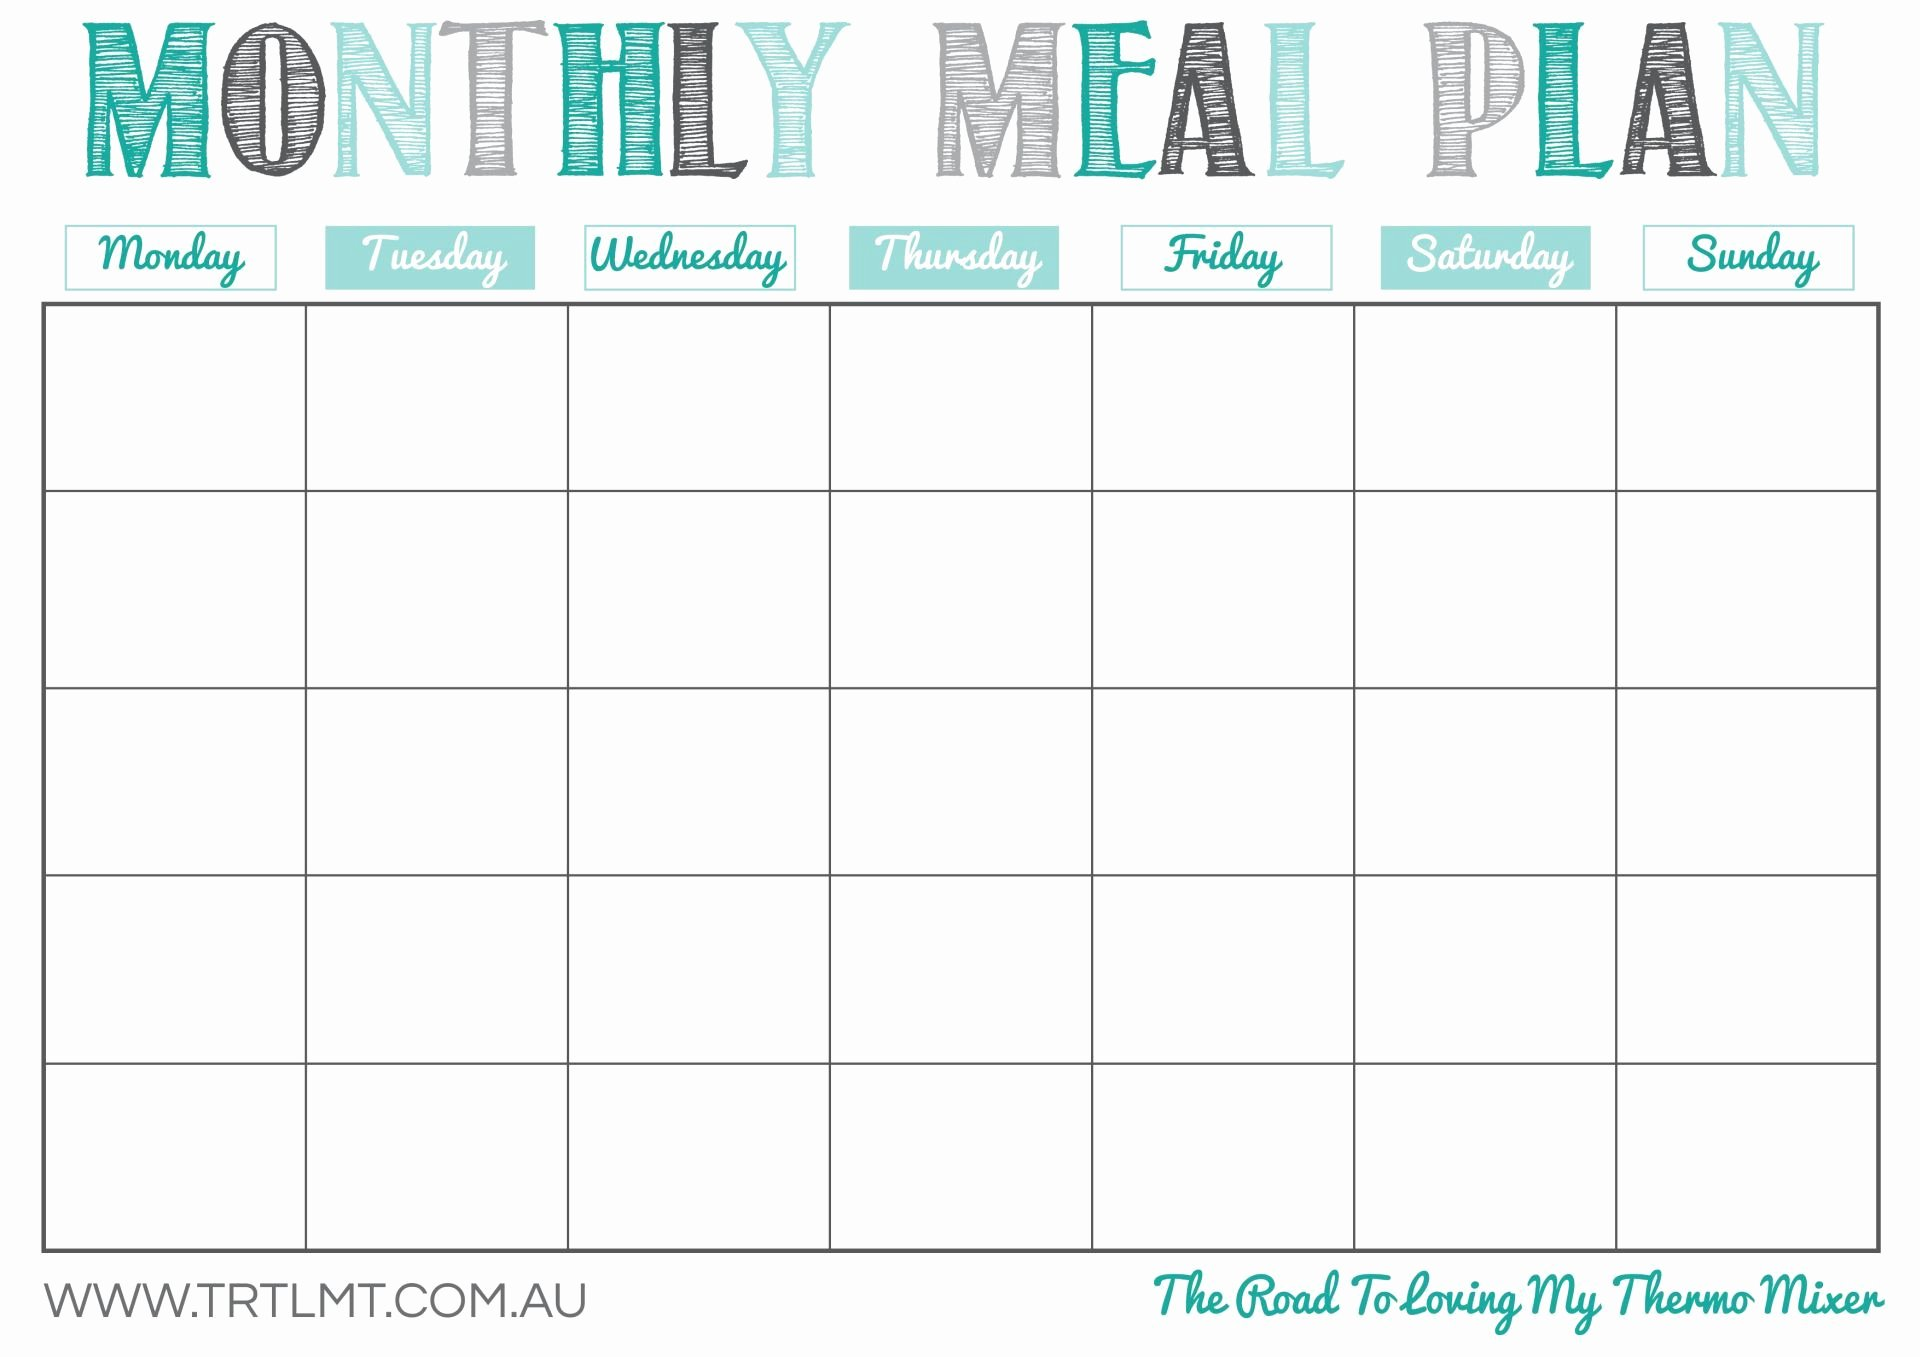 Meal Plan Calendar Template New Monthly Meal Plan 2 Fb Crafts